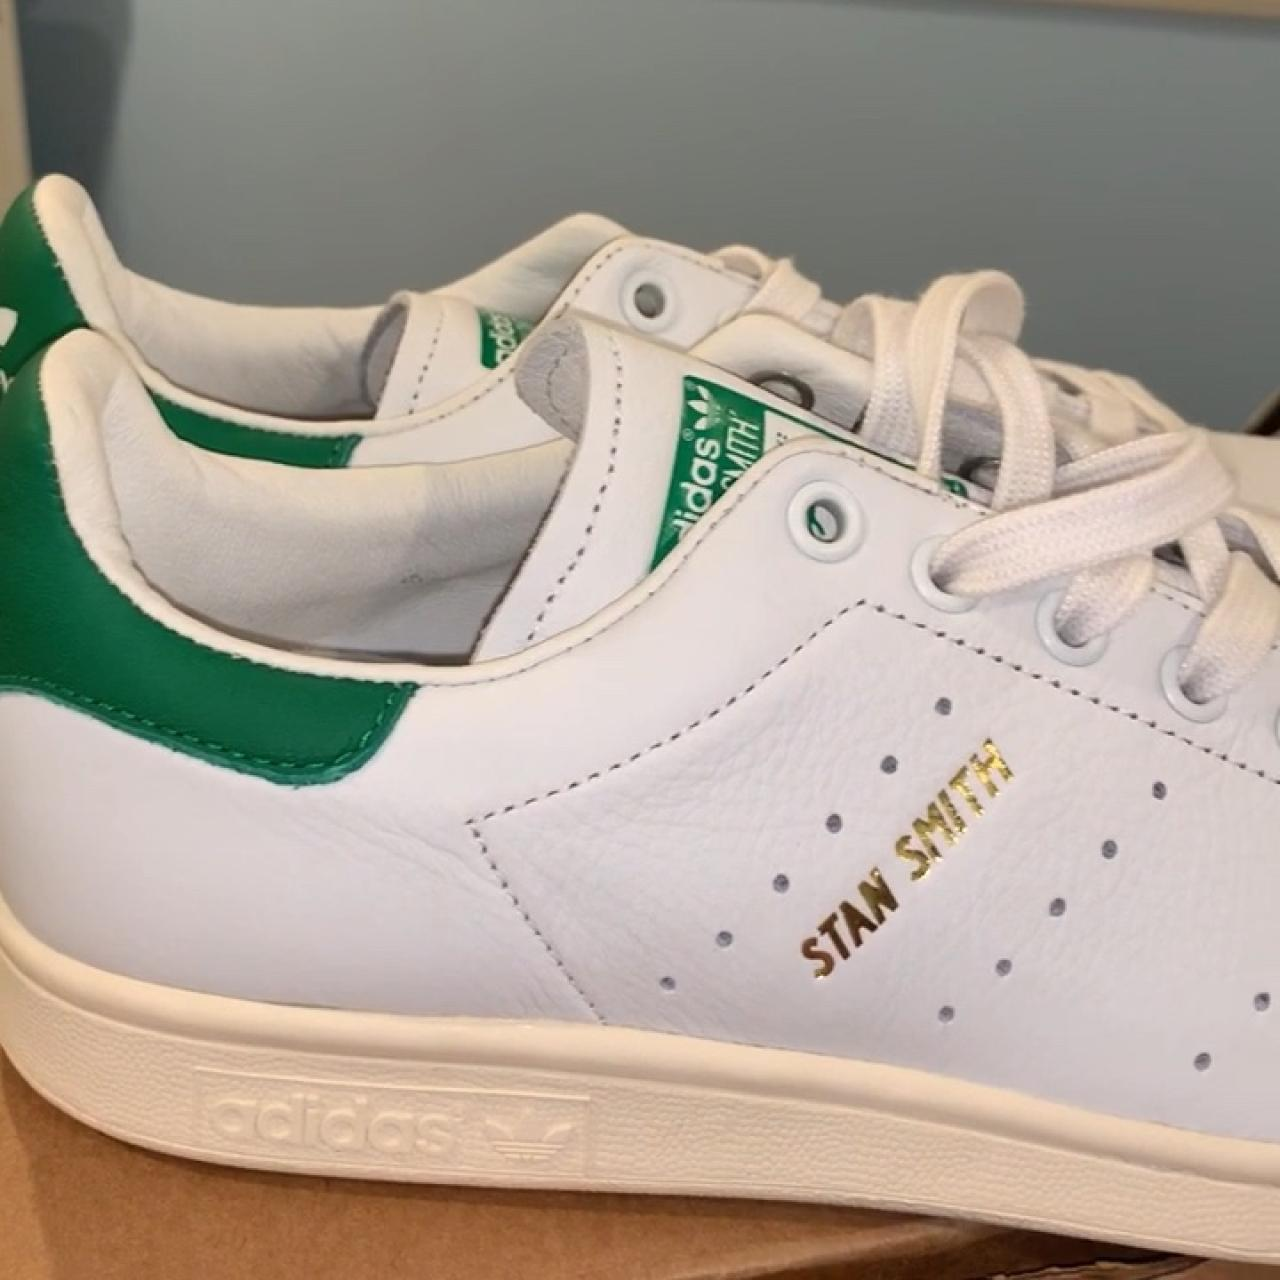 4819dcb141a Men s white green size 9 adidas Stan smiths. New